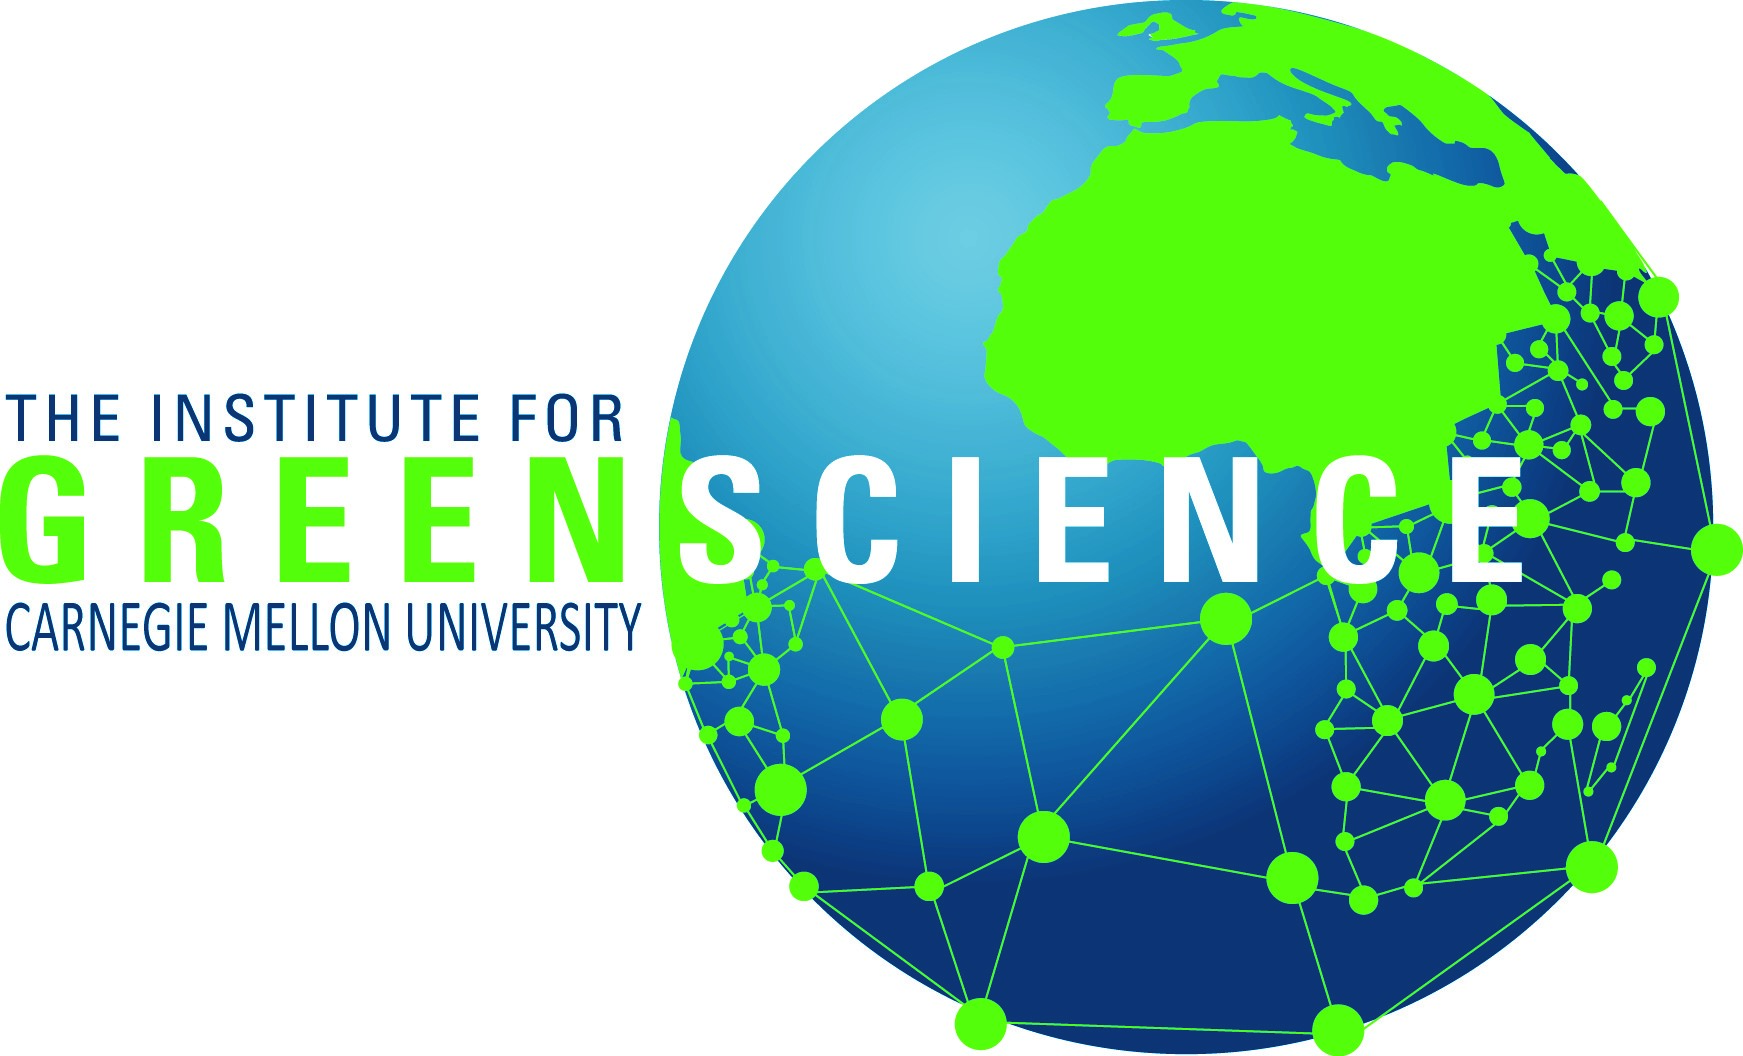 The Institute for Green Science at Carnegie Mellon University